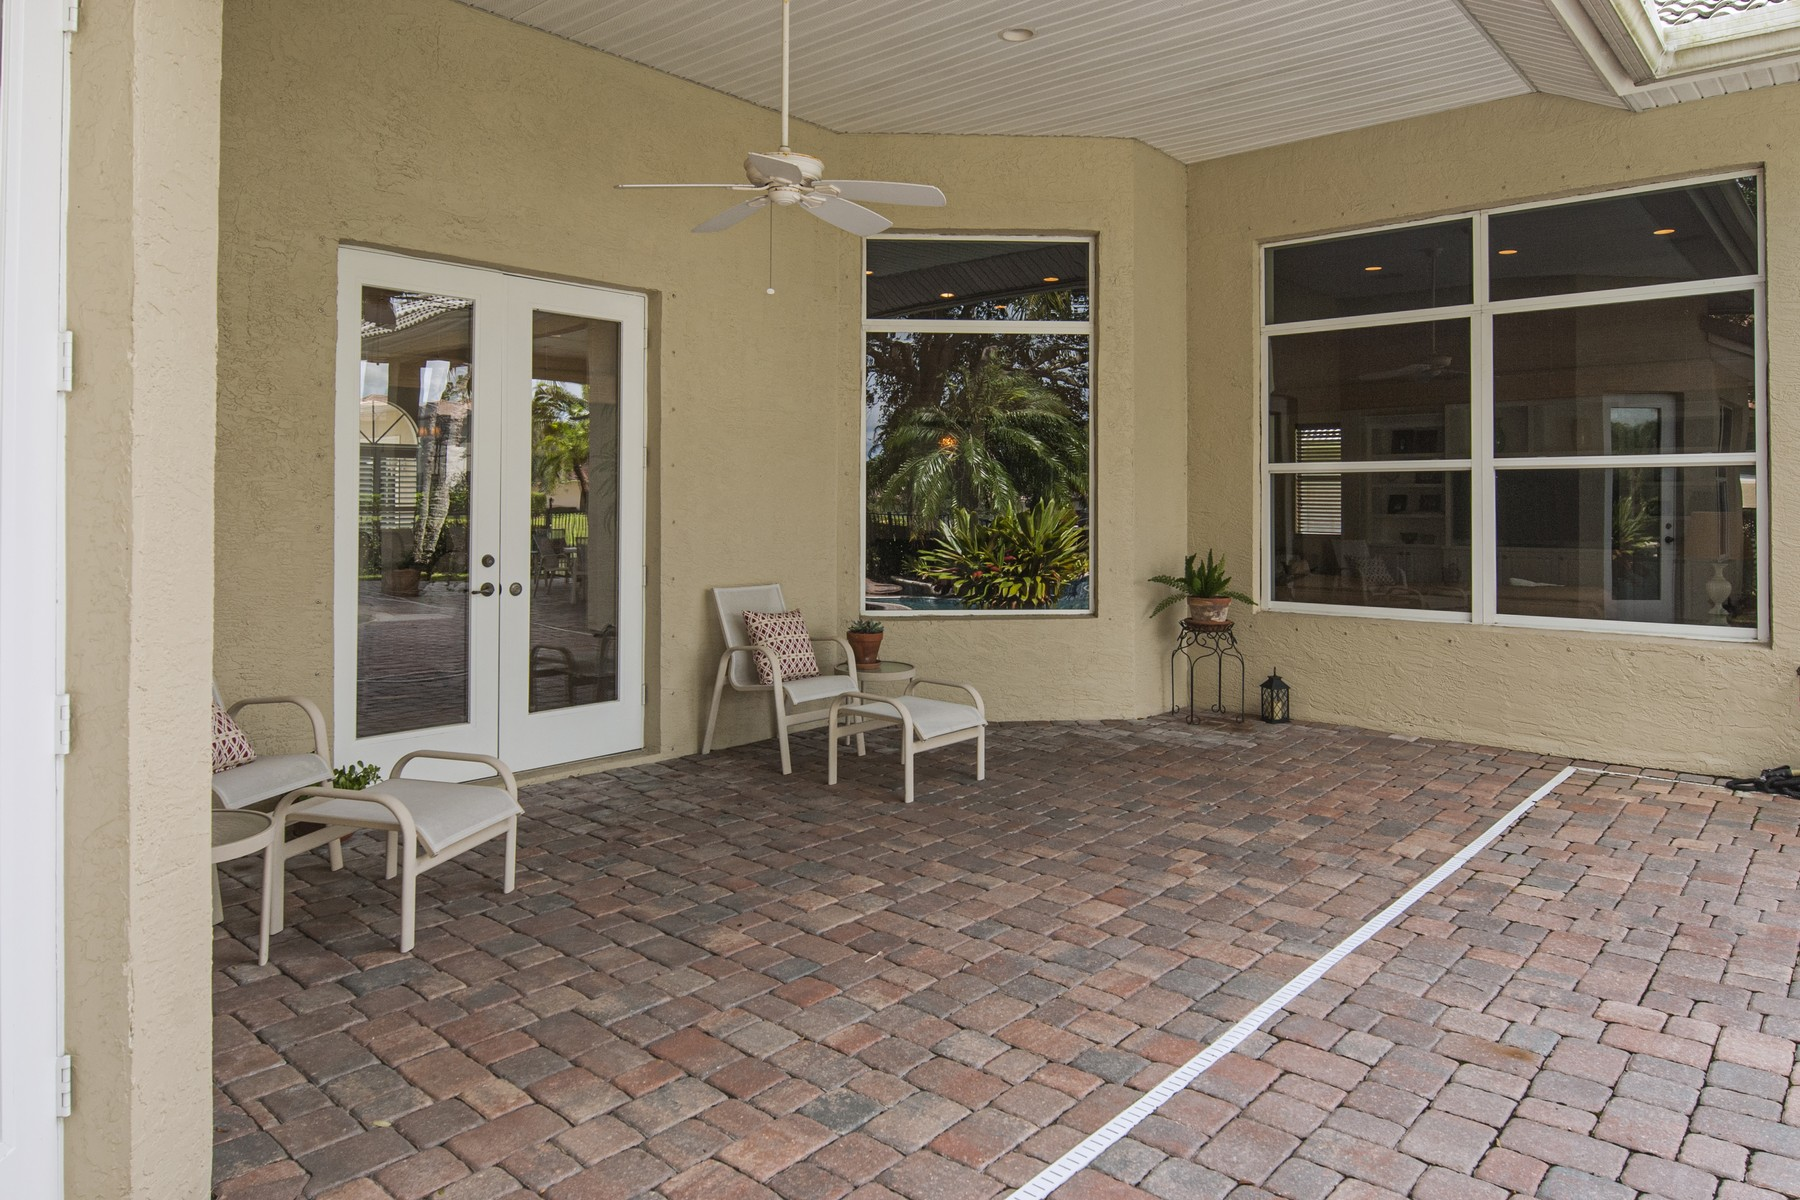 Additional photo for property listing at Gorgeous Four Bedroom Home on Doctor's Row 1735 Cassville Avenue Vero Beach, Florida 32966 United States